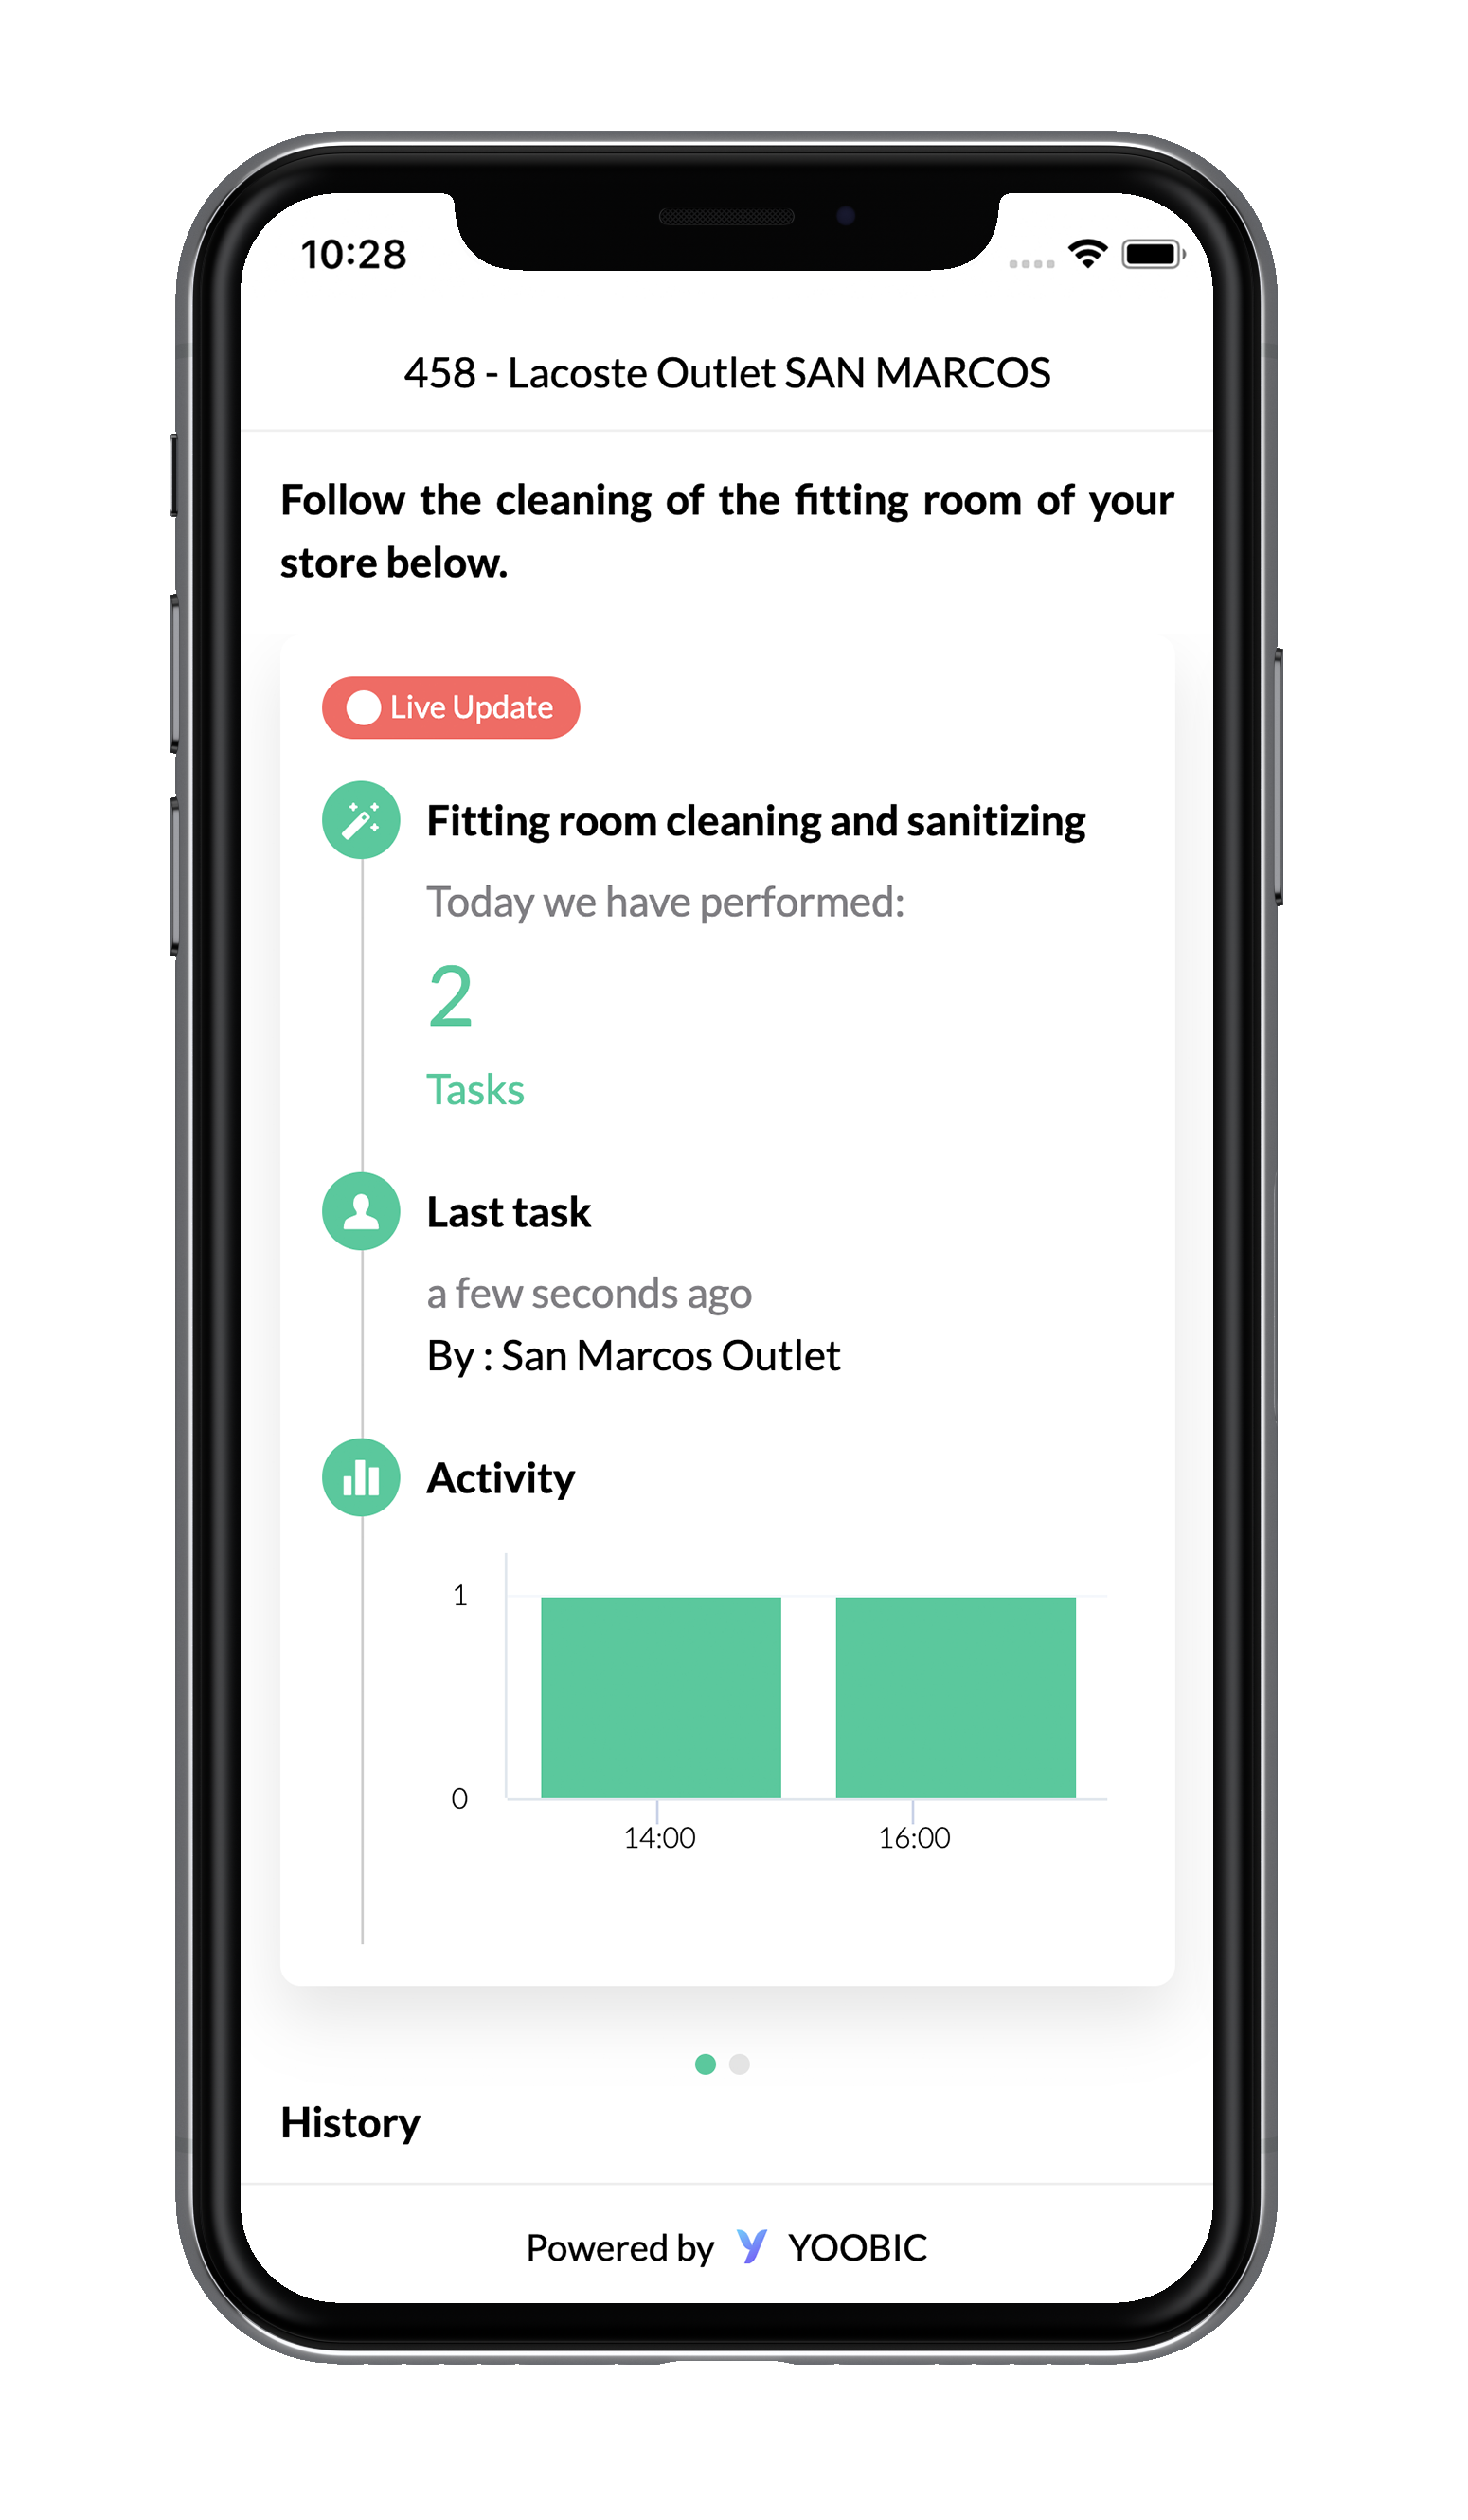 Lacoste Teams With Tech App YOOBIC To Provide Live Updates on Store Safety